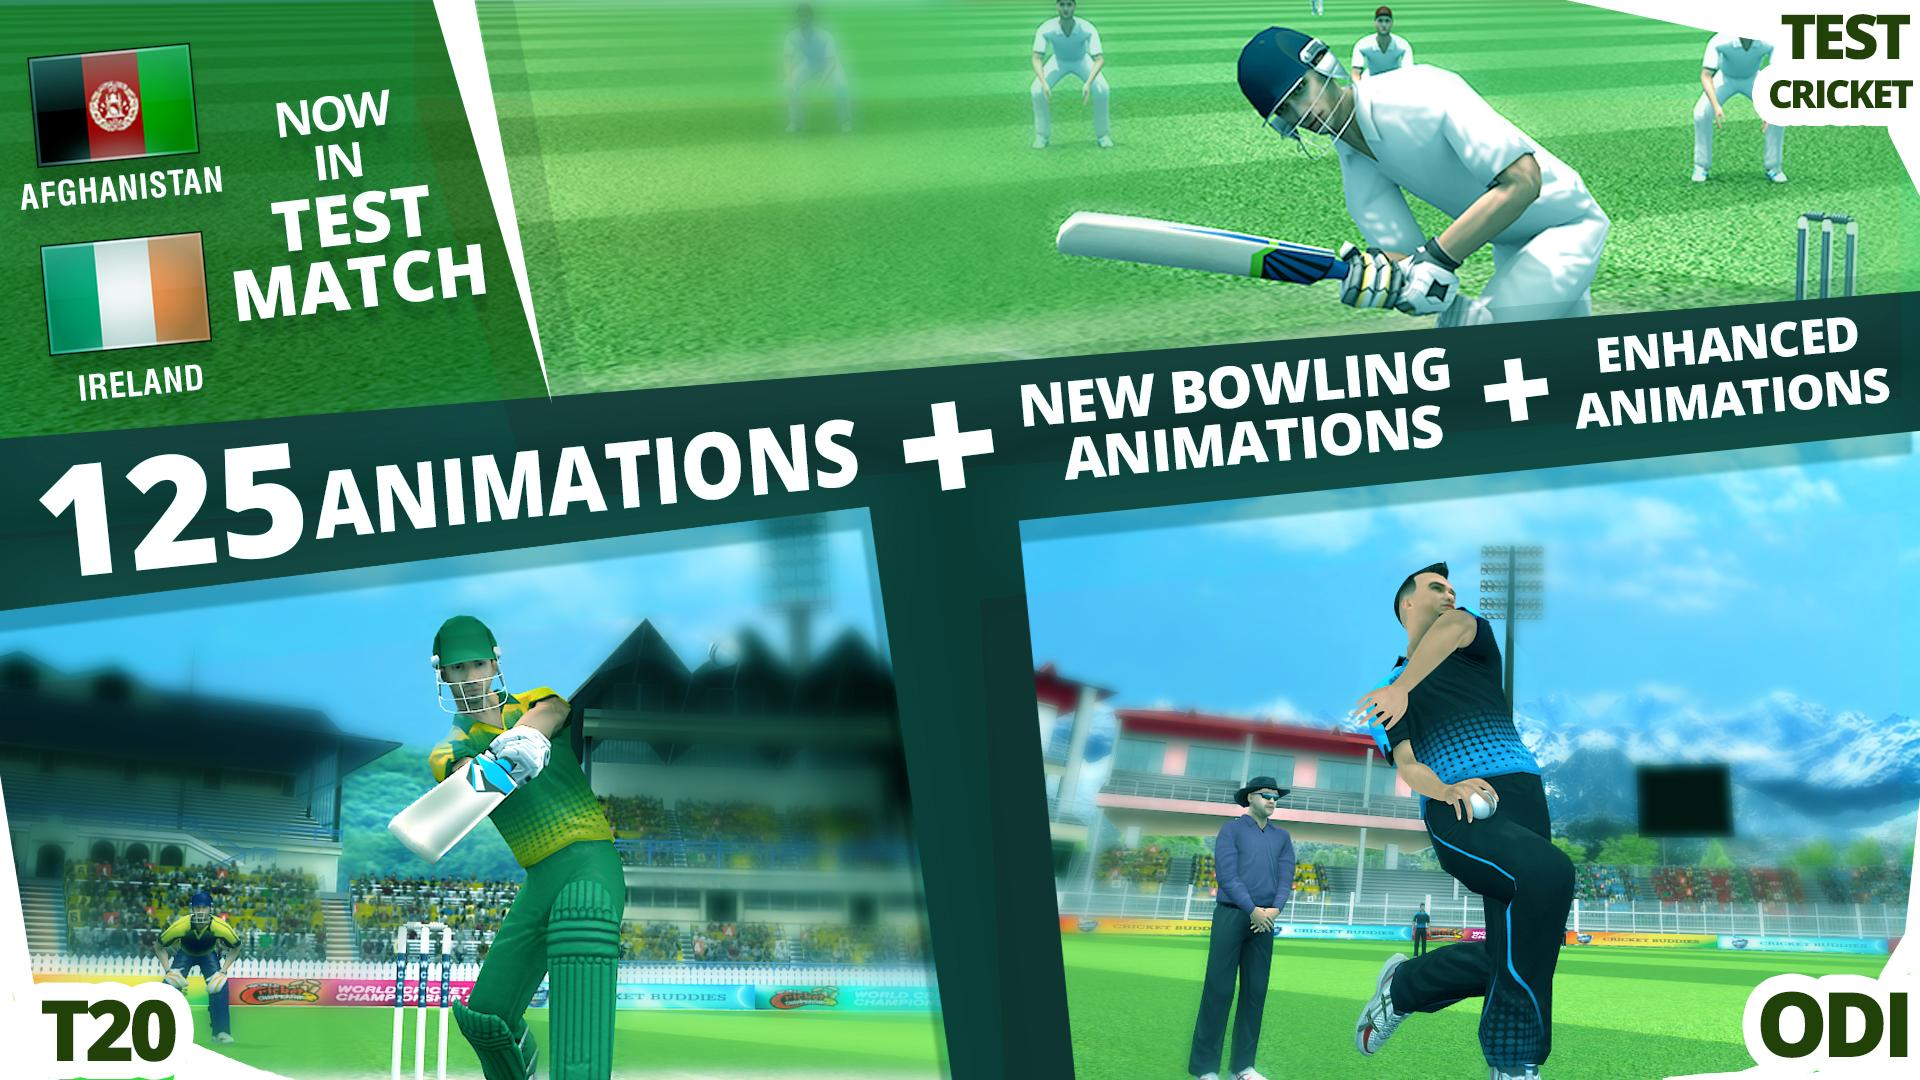 World Cricket Championship 2 Mod Apk (Unlimited Money) 2.8.2.3 Latest Version 3